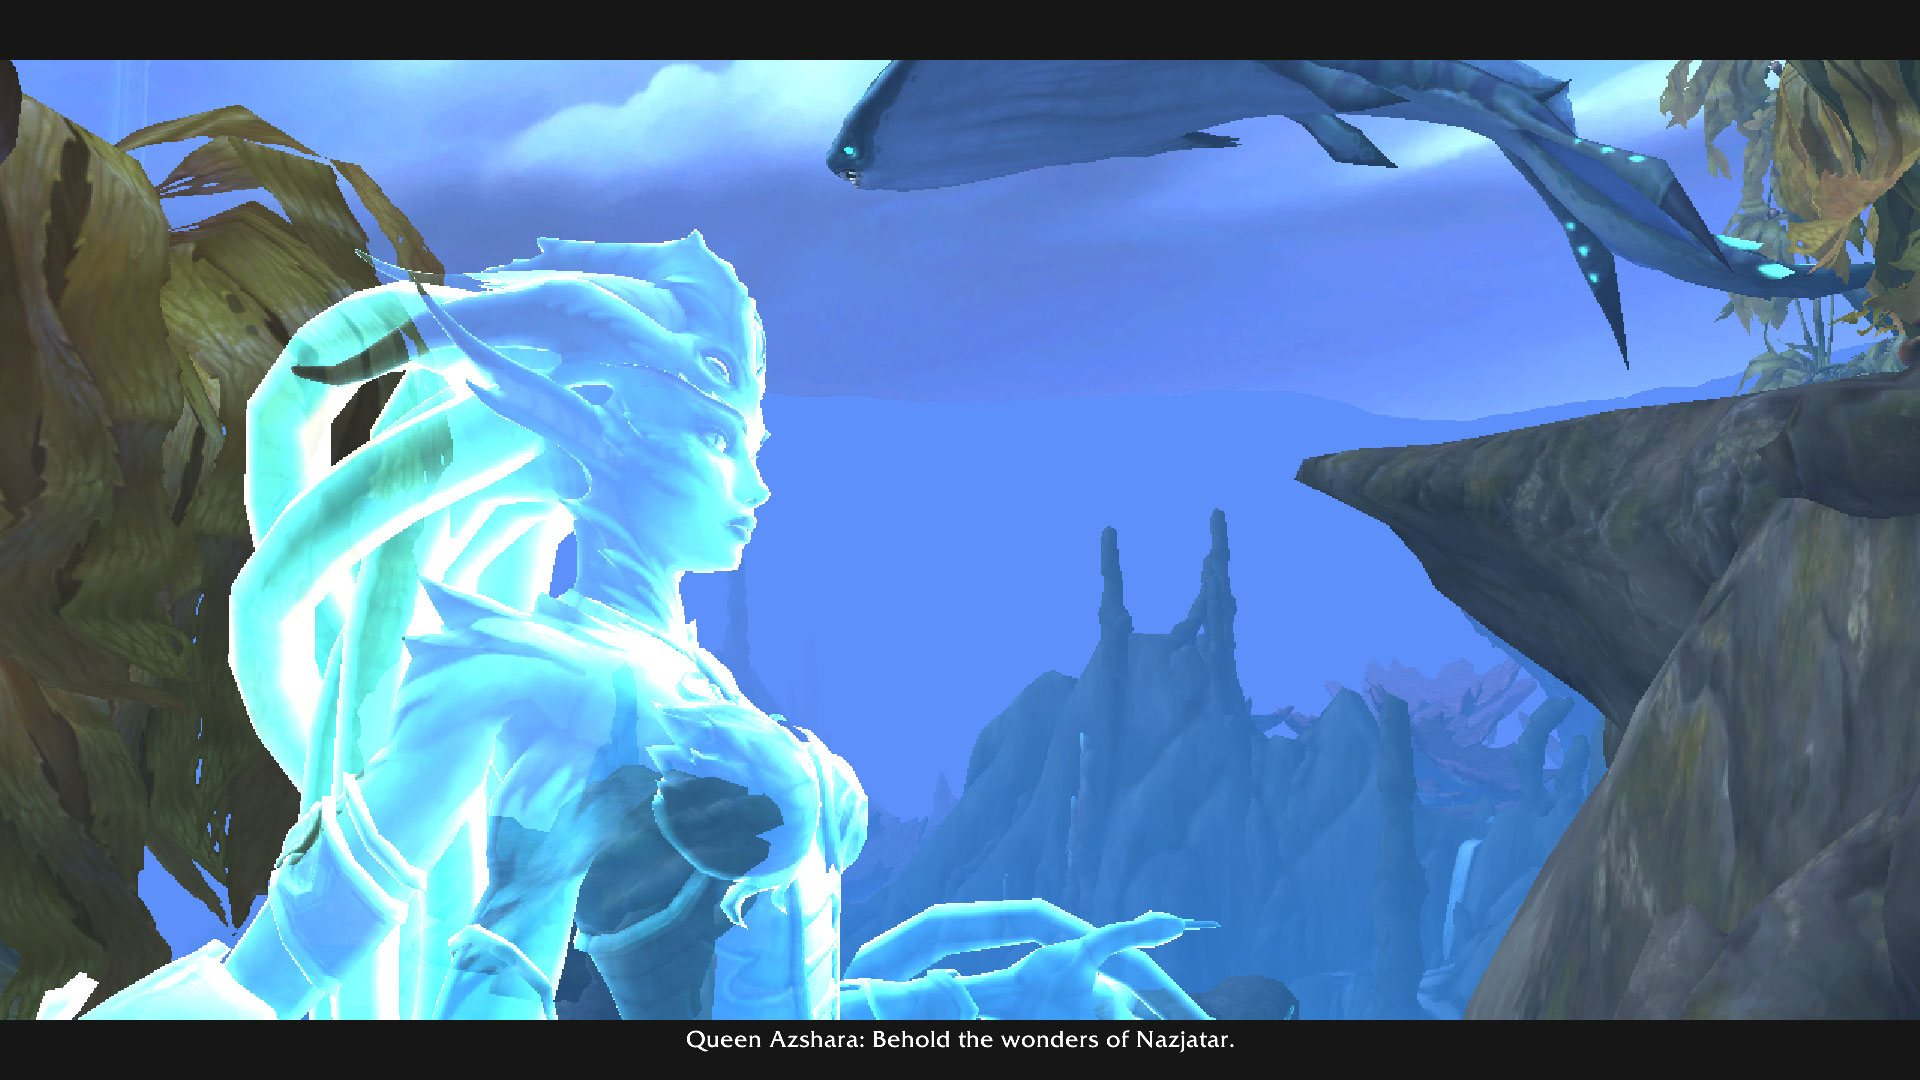 "alt=""queen azshara in nazjatar""/>"